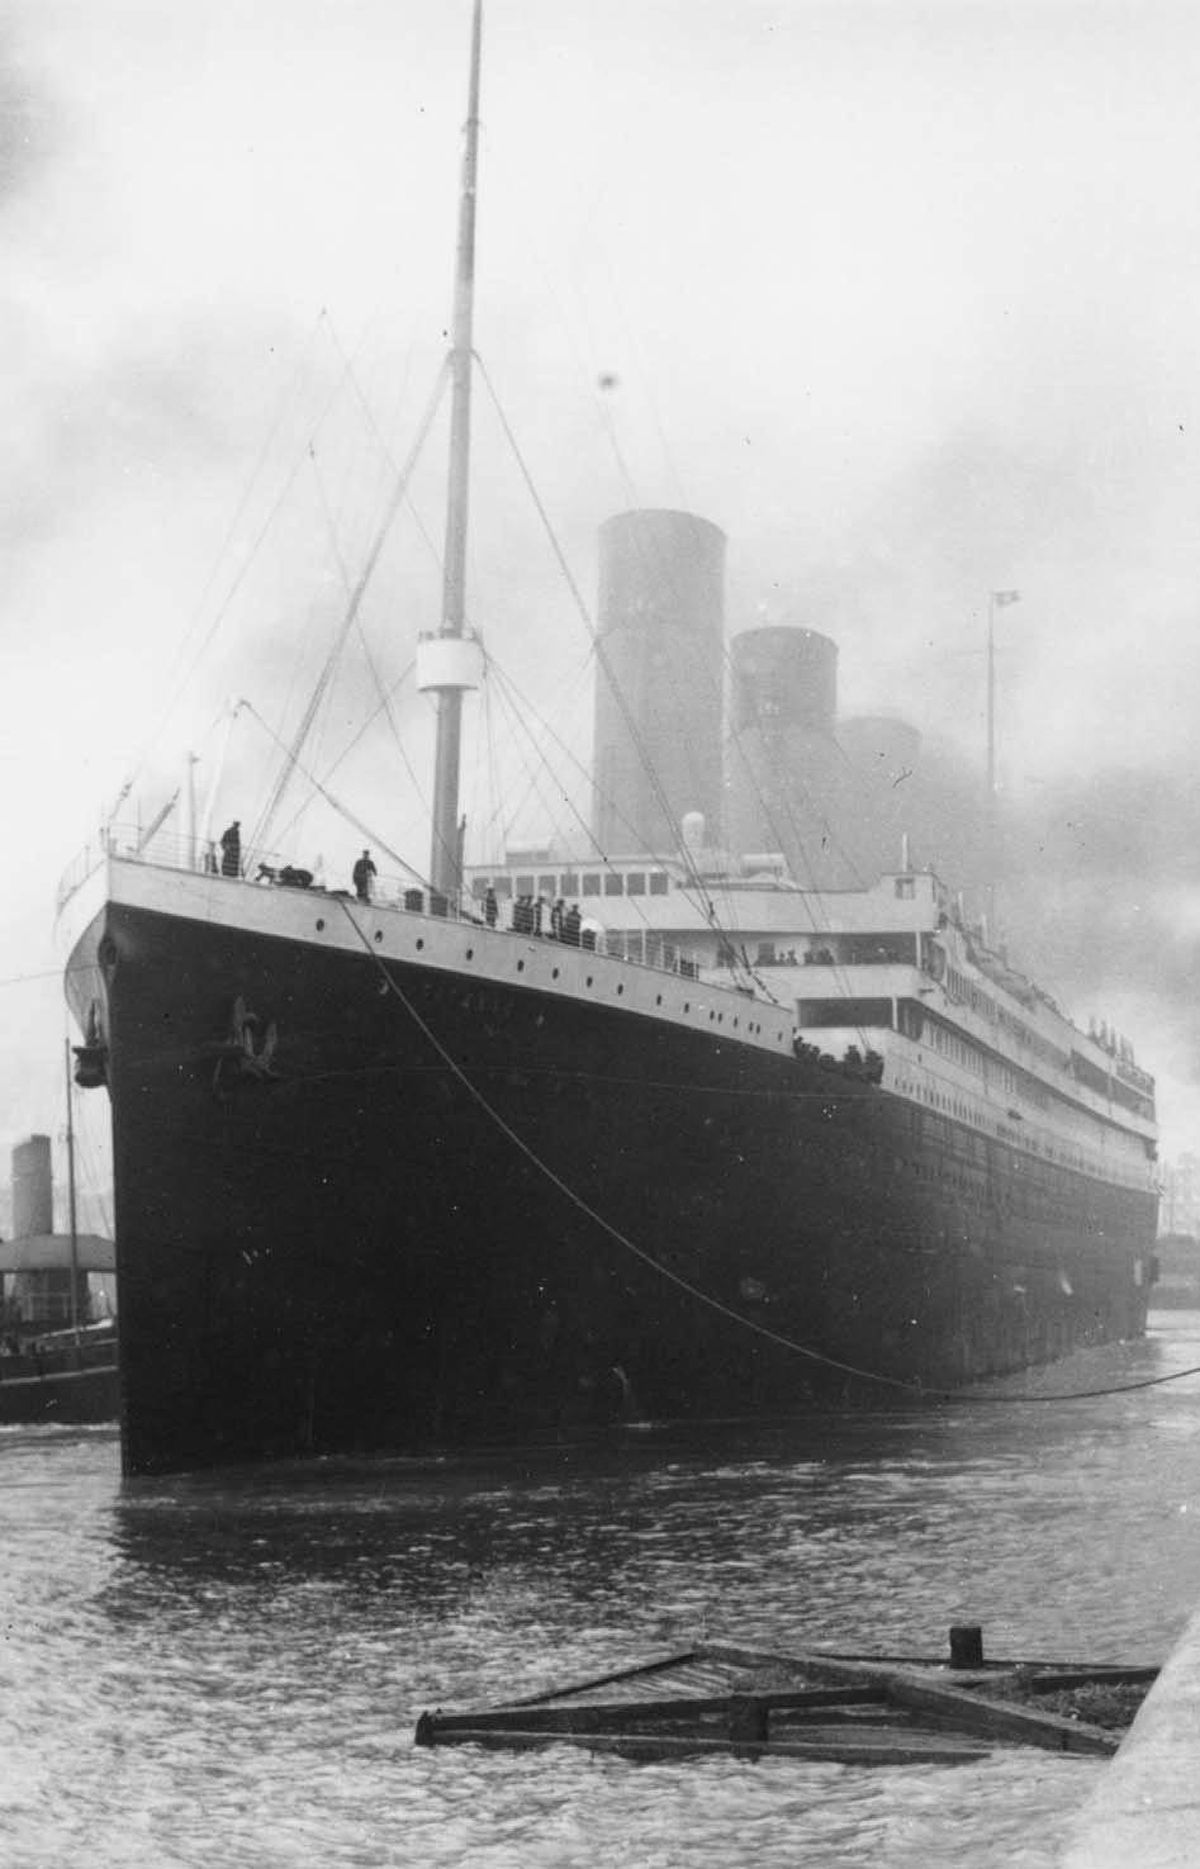 DOCUMENTARY Titanic: The Canadian Story CBC, 8 p.m. Airing to coincide with the upcoming 100th anniversary of the sinking of the RMS Titanic in the North Atlantic, this new documentary is both sombre and unsettling. Among the more than 2,200 passengers and crew were 130 men, women and children en route to Canada. Using letters and diary entries, the film relates the untold stories of several of those on board, including railway magnate Charles Hays, who made a doomful prediction before the Titanic's maiden voyage and perished at sea, and Bridget Bradley, a young Irish immigrant who barely escaped the tragedy and went on to marry a Canadian and live a full life in Gananoque, Ont.